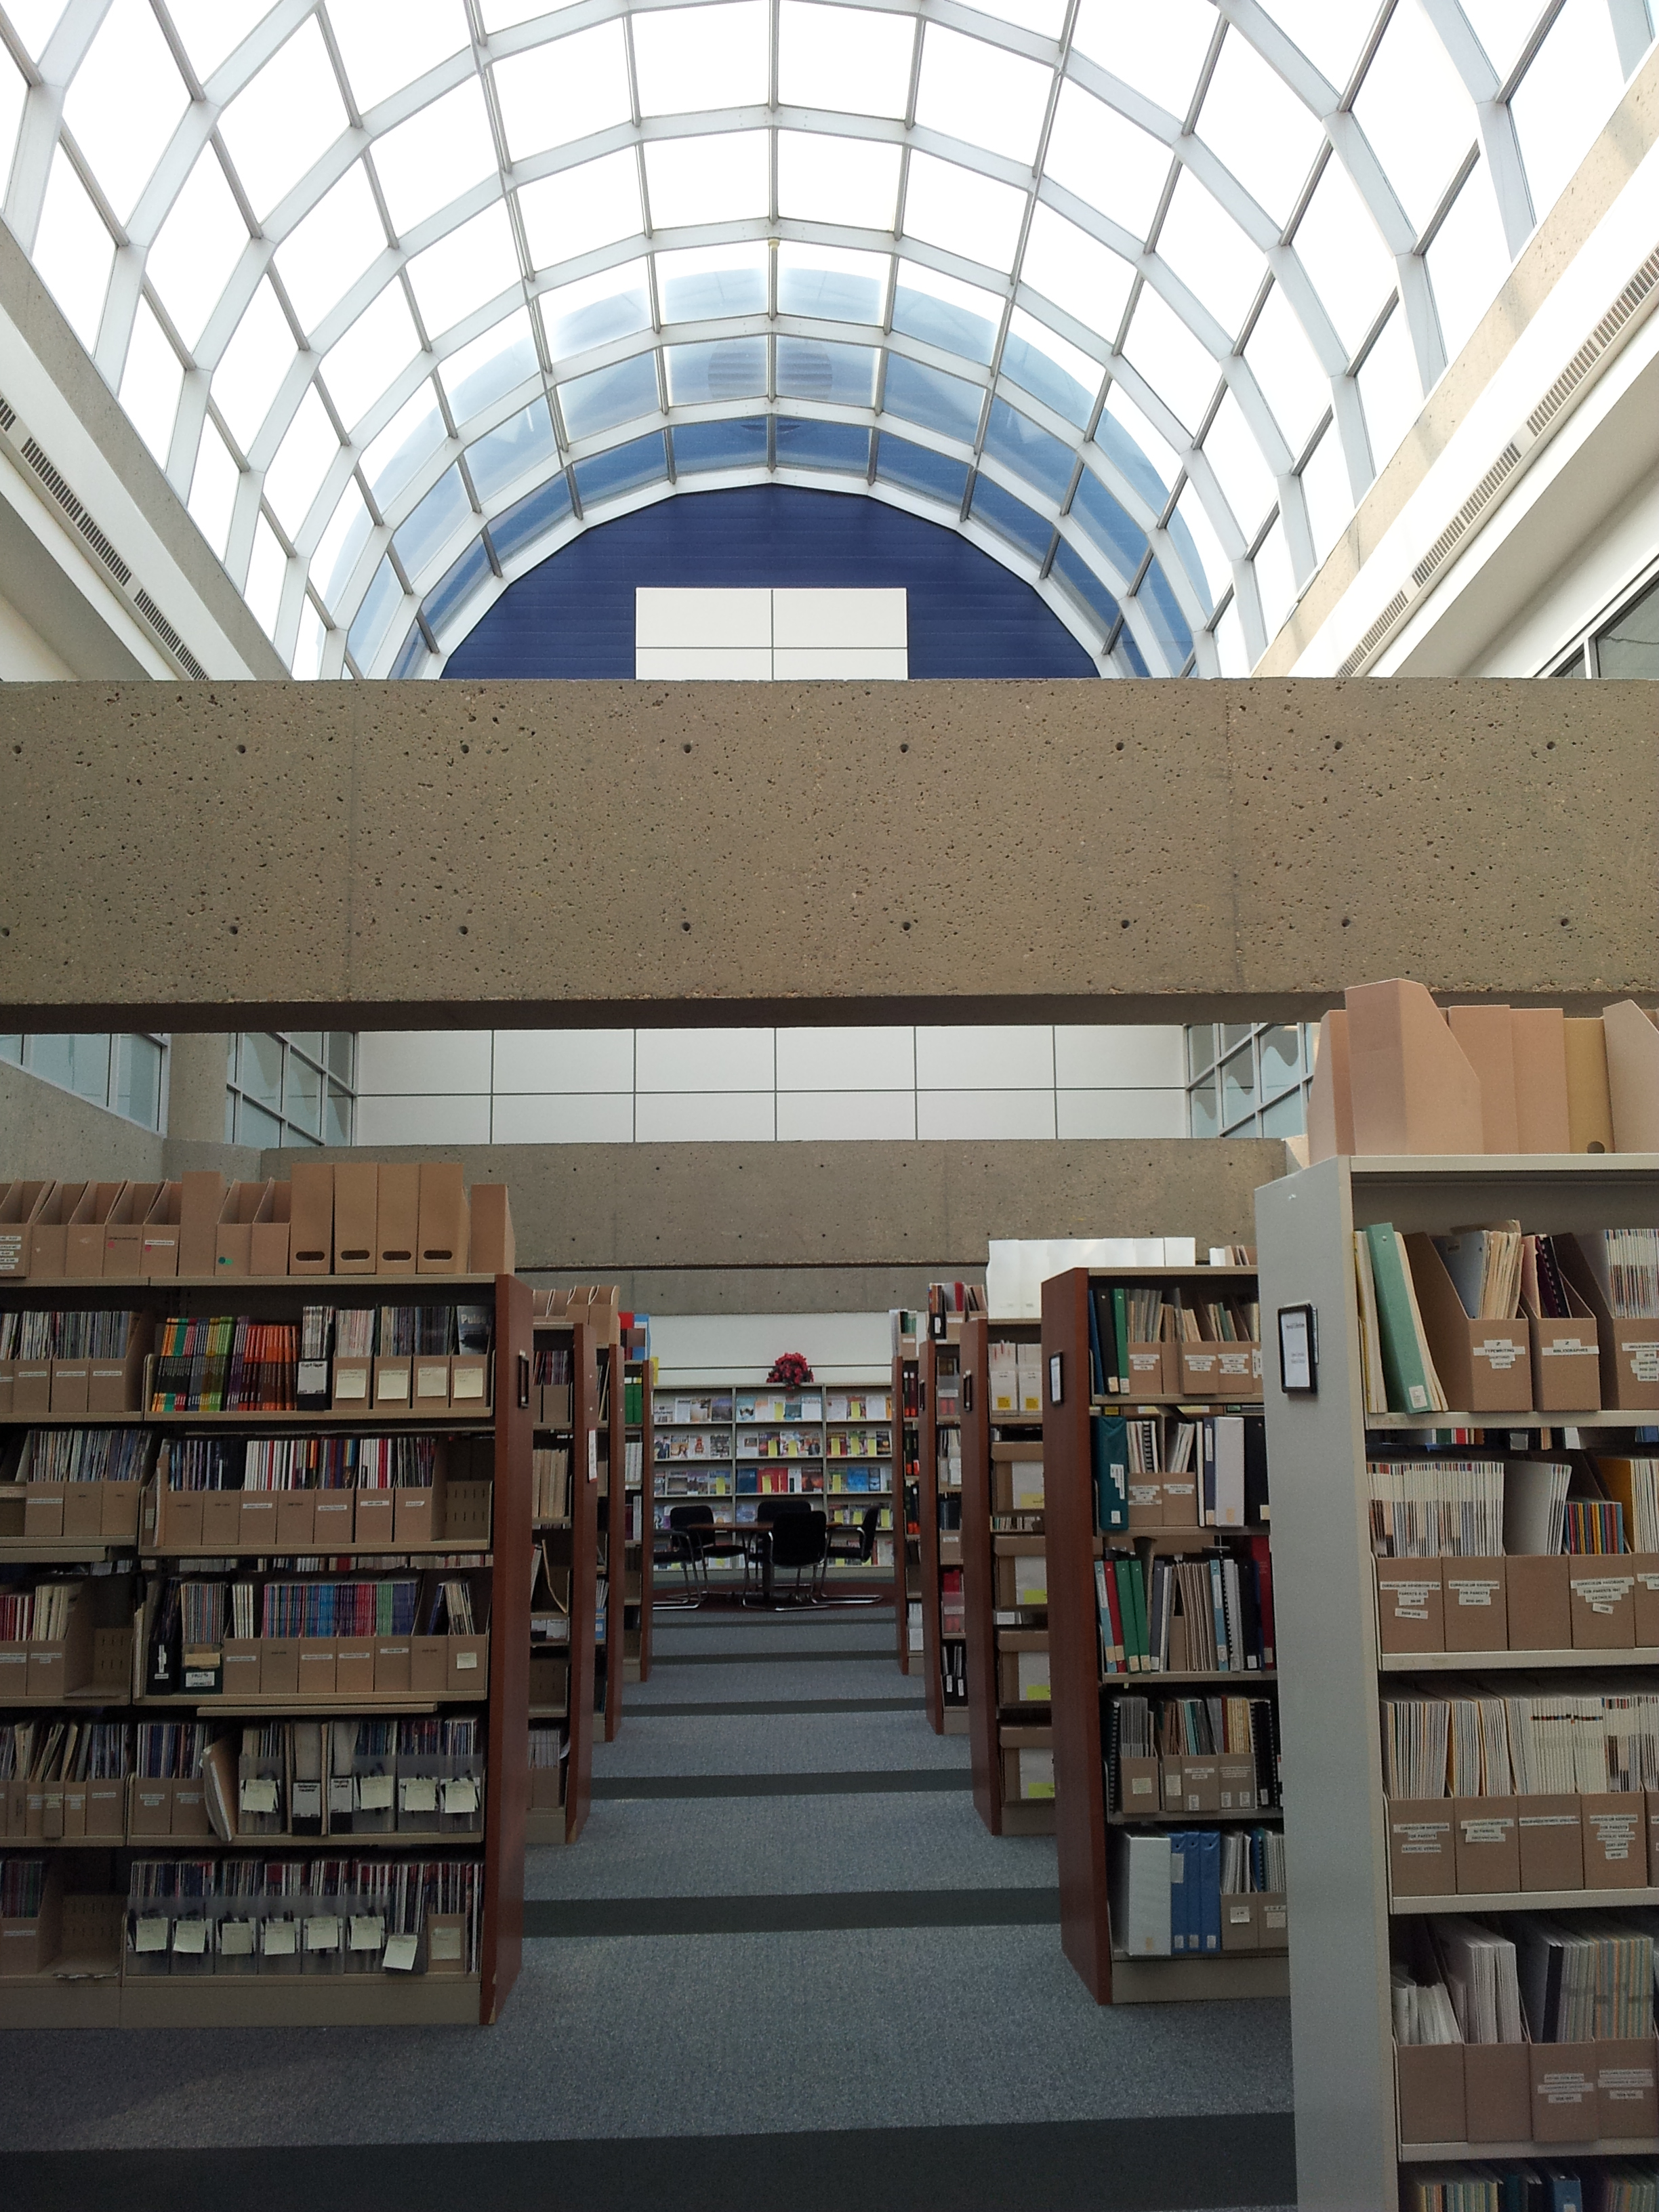 The periodicals and legacy collections area (where yoga happens). Let there be natural light!